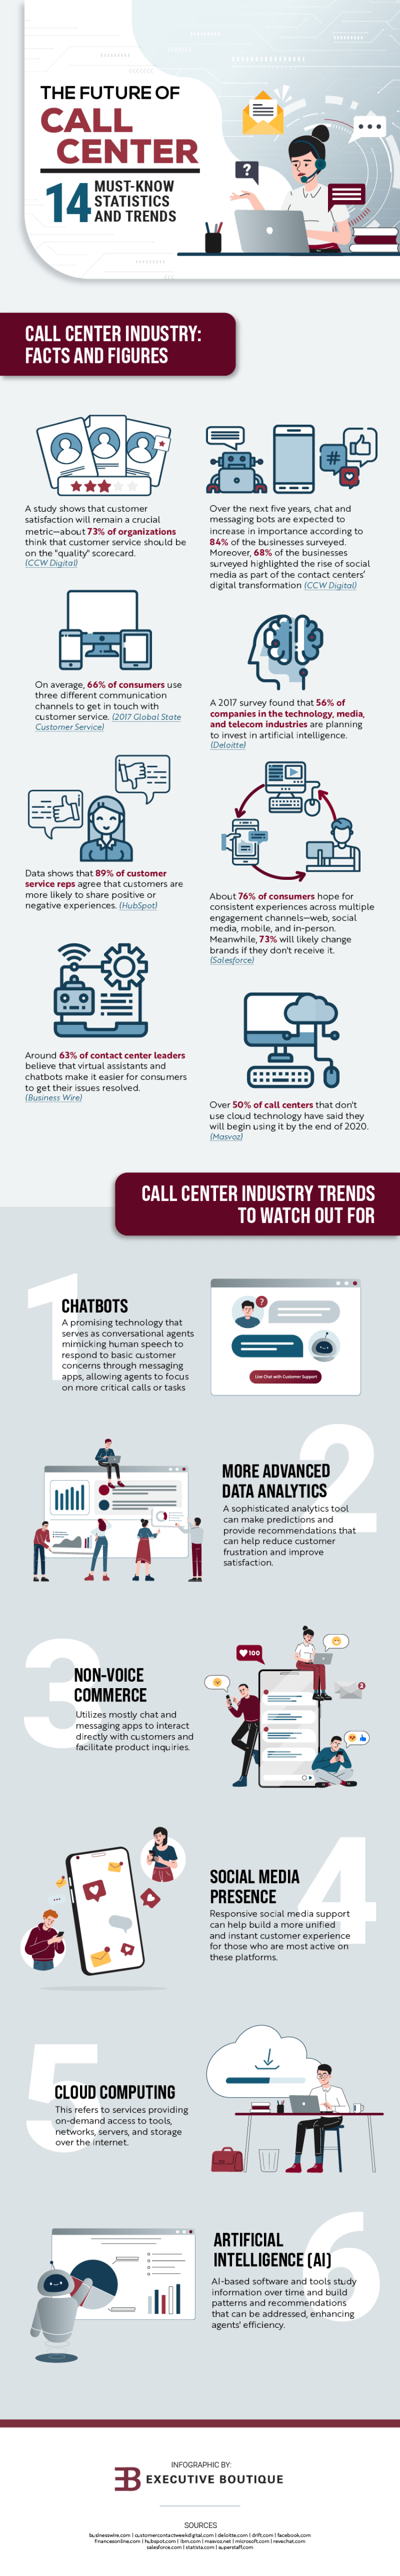 Infographic The Future of Call Center 14 Must Know Statistics and Trends